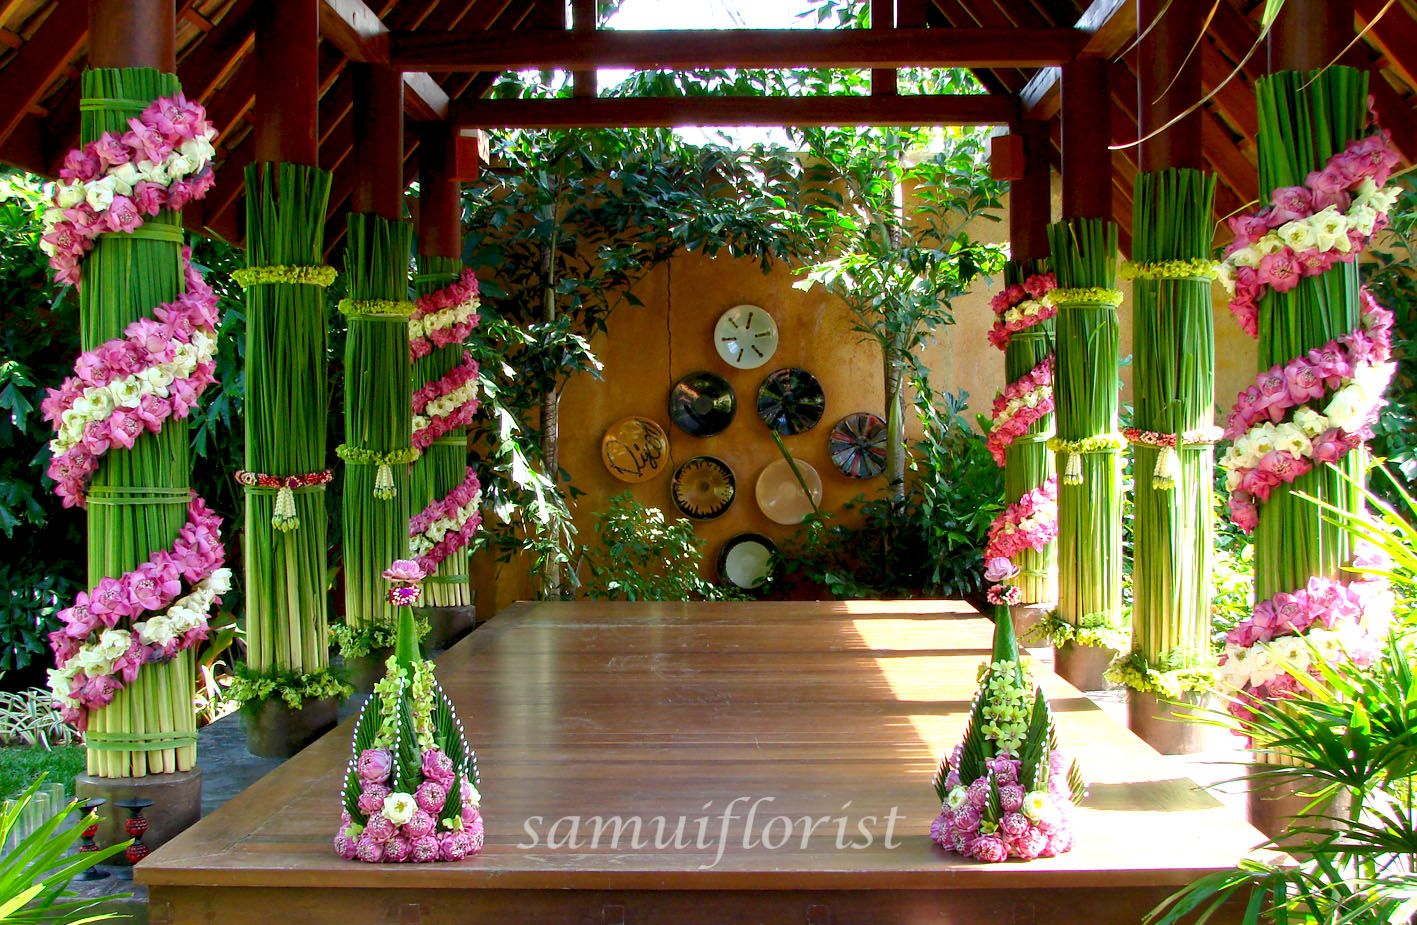 Outdoor wedding ceremony flower arrangements bamboo gazebo flower outdoor wedding ceremony flower arrangements bamboo gazebo flower decorate 4 pole and with flower decorate junglespirit Choice Image